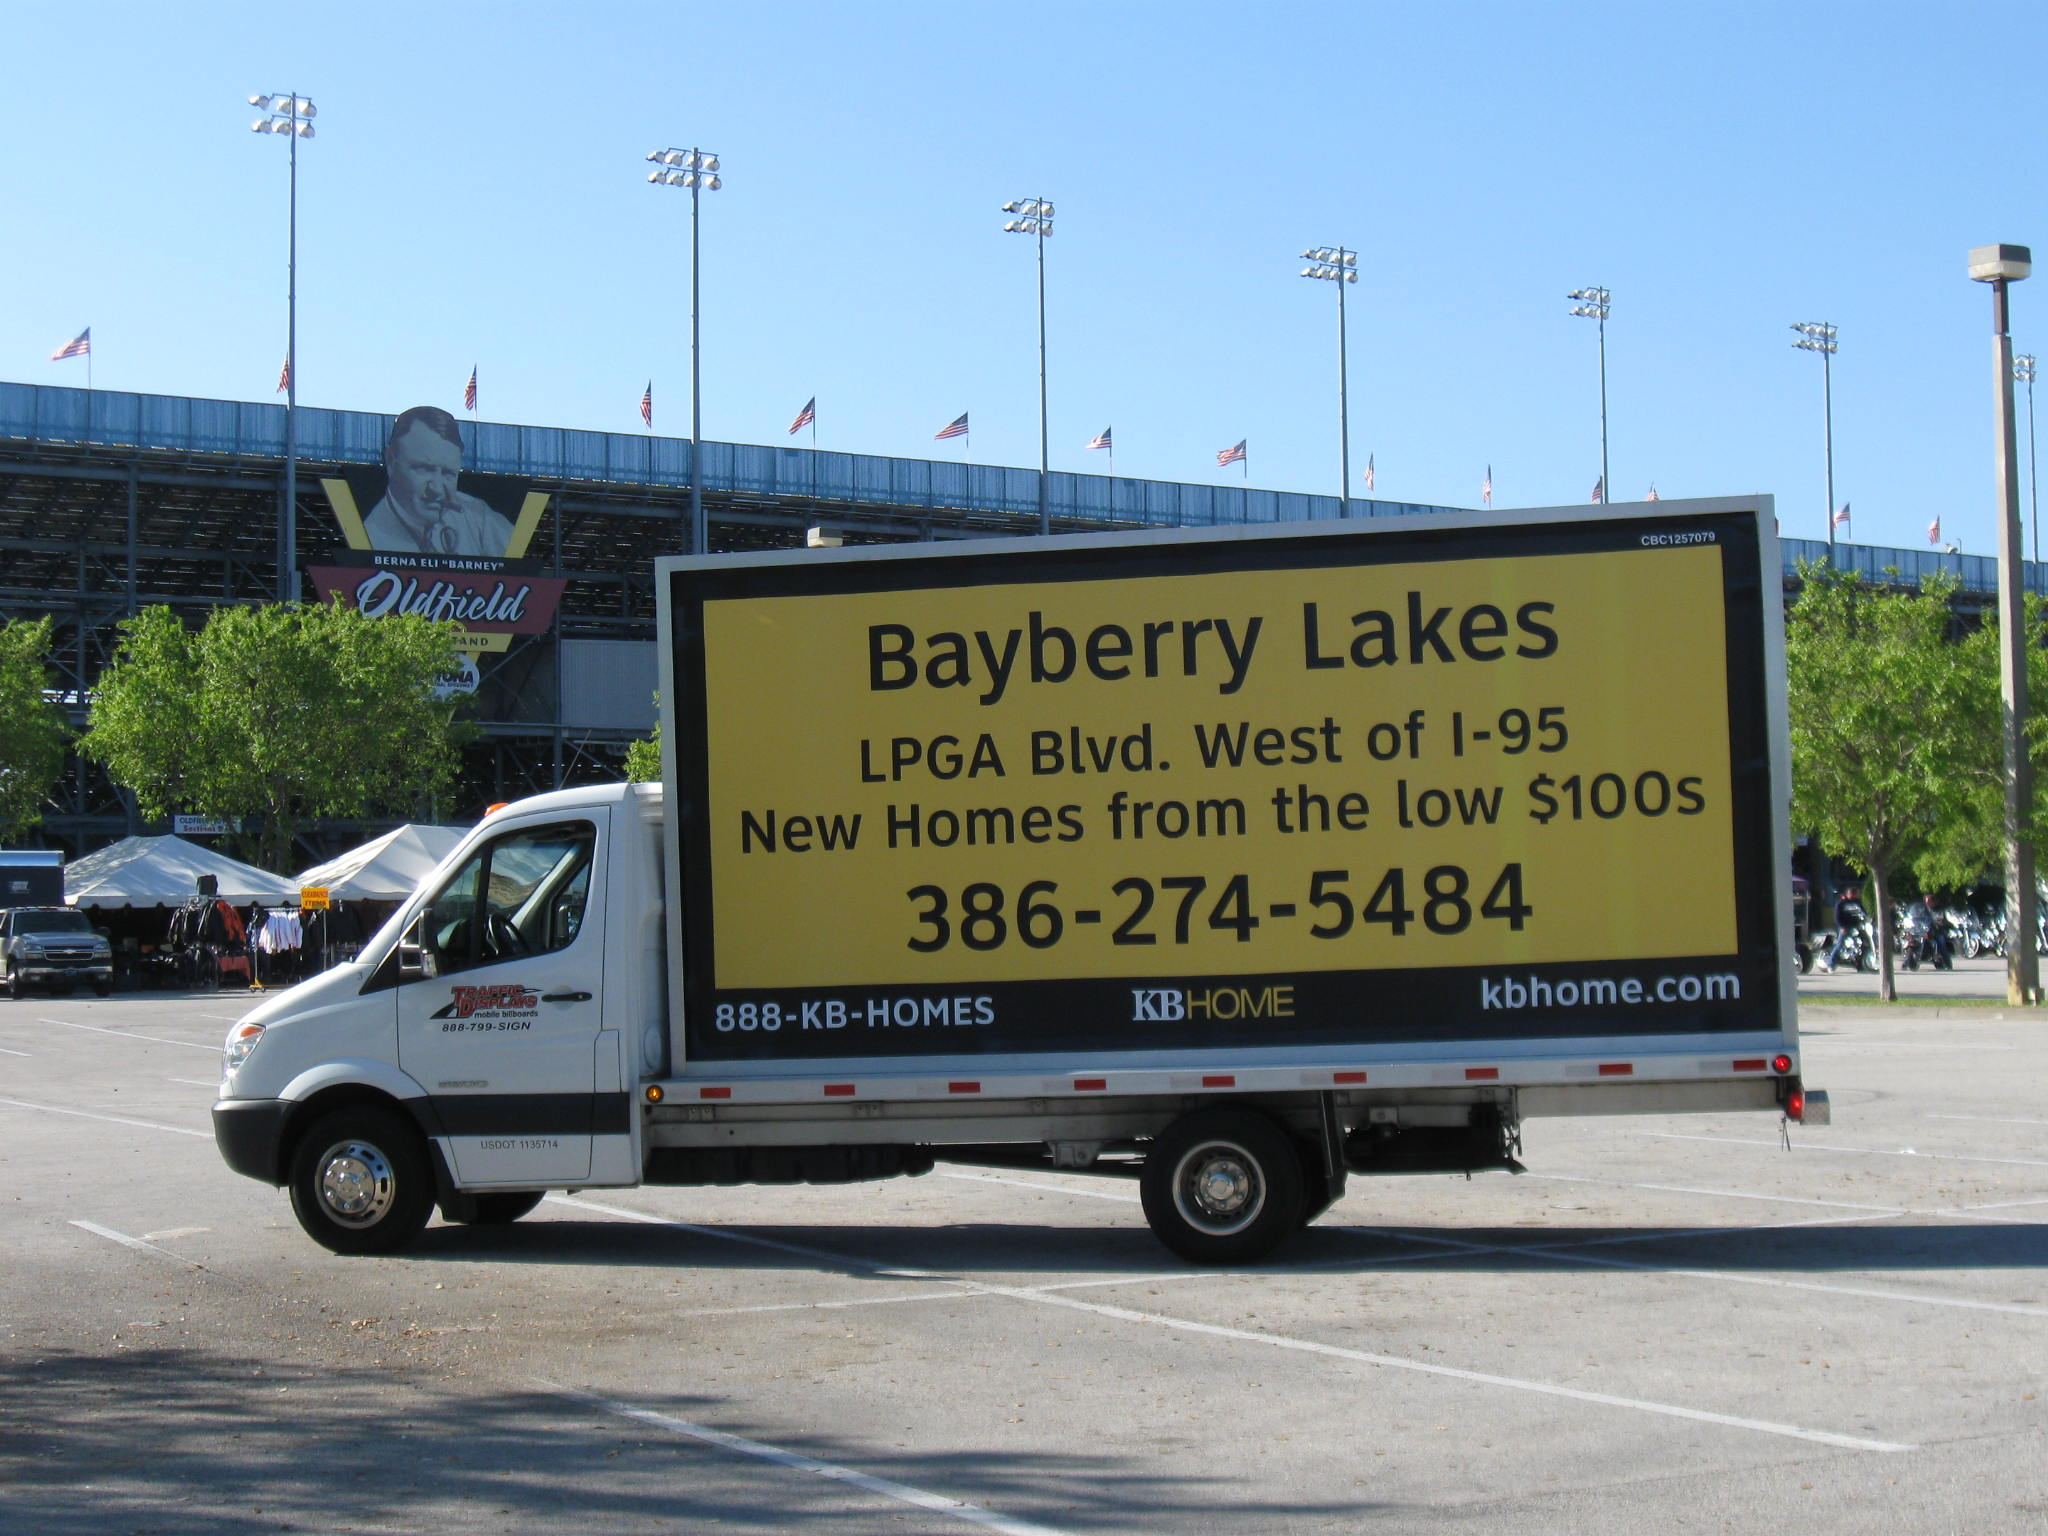 Daytona Mobile Billboard Truck